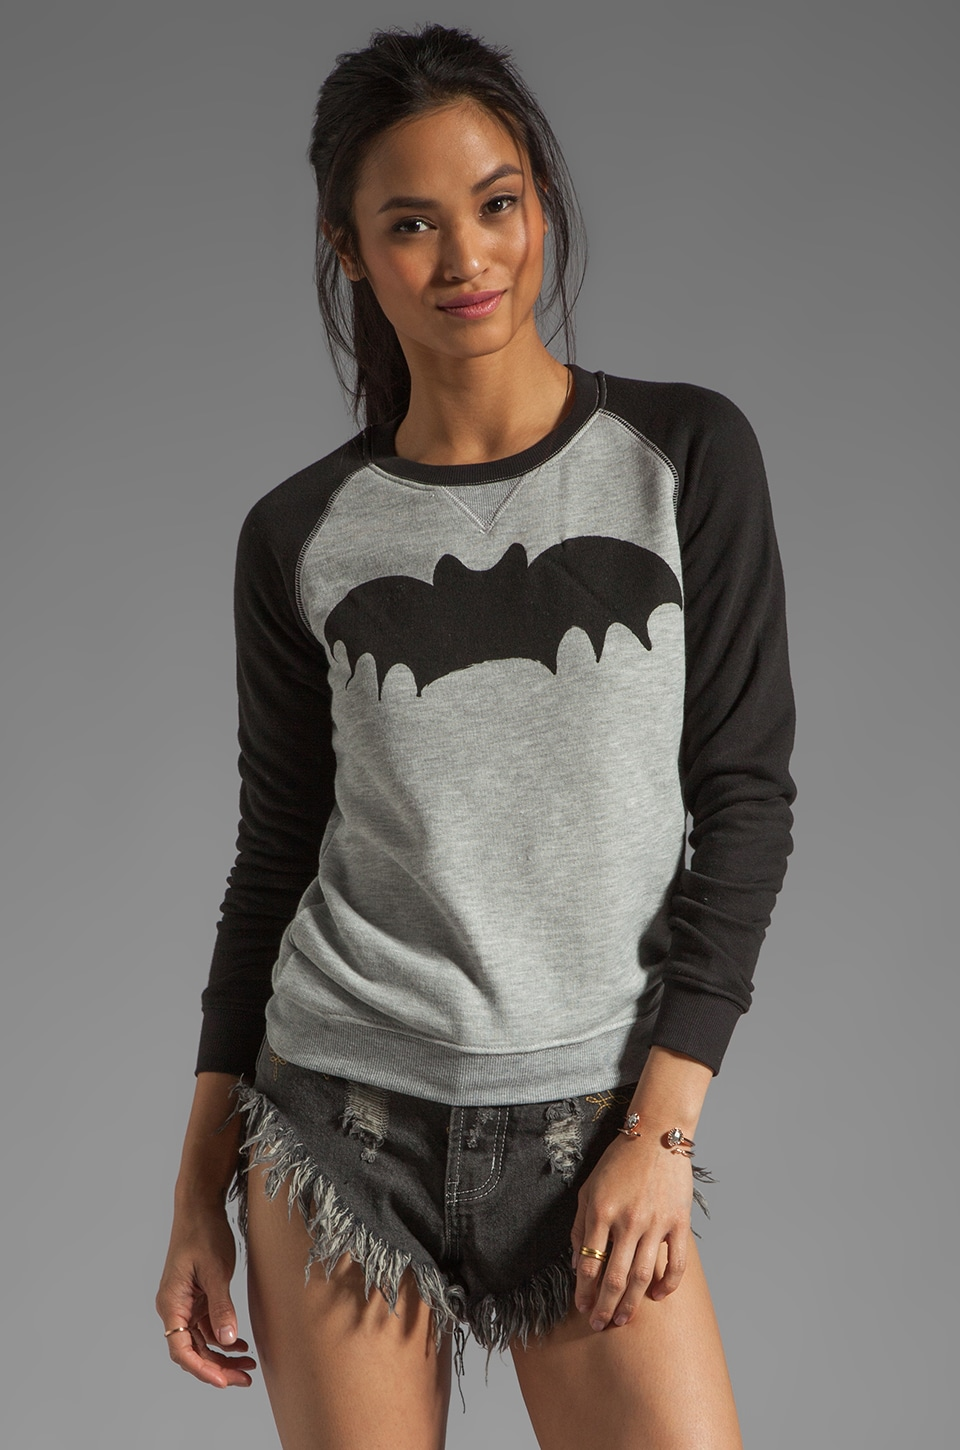 Zoe Karssen Loose Fit Bat Sweater in Grey Heather